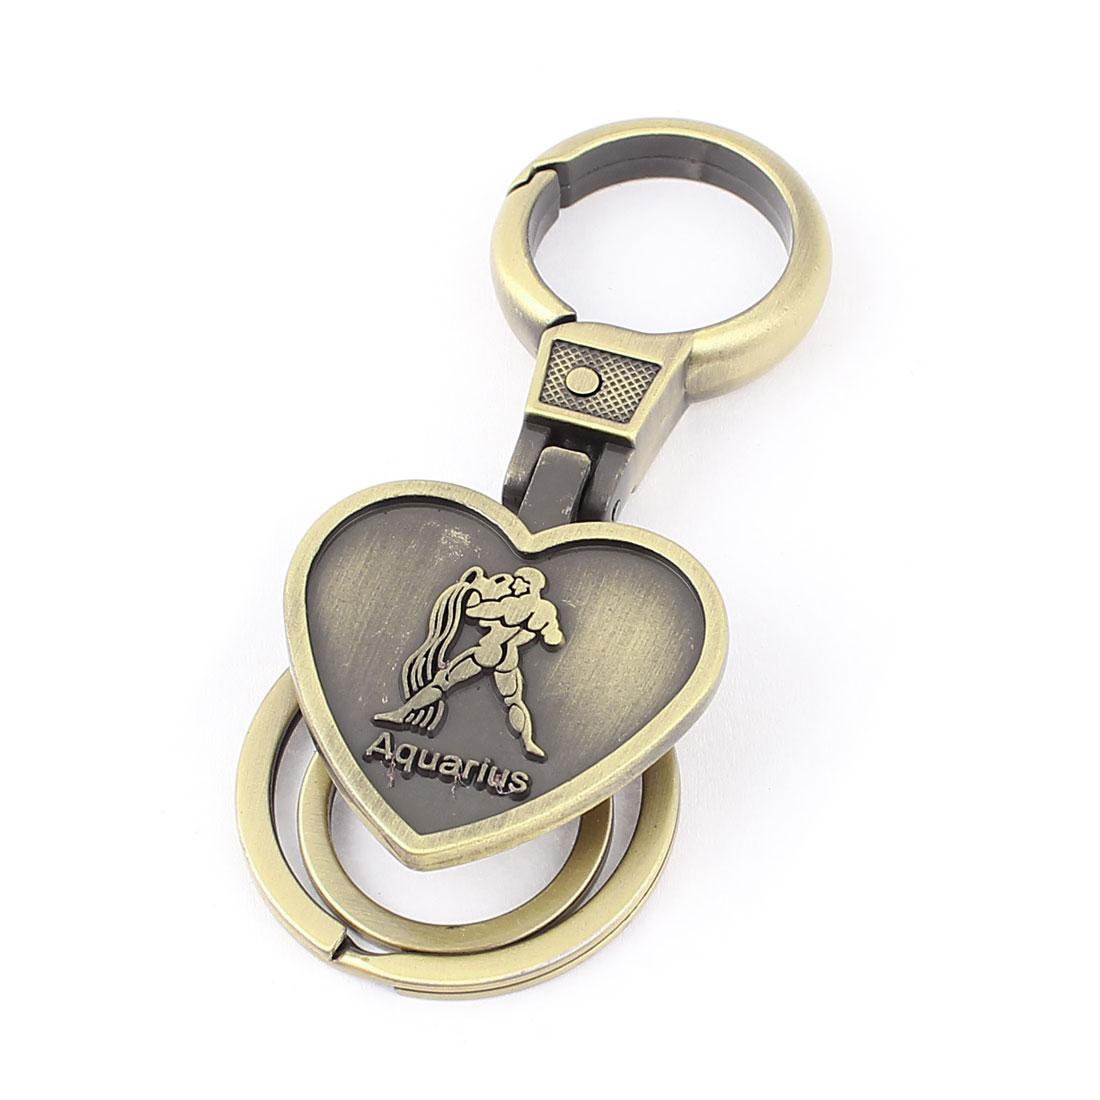 Aquarius Embossment Heart Shaped Pendant Keyring Keychain Bronze Tone